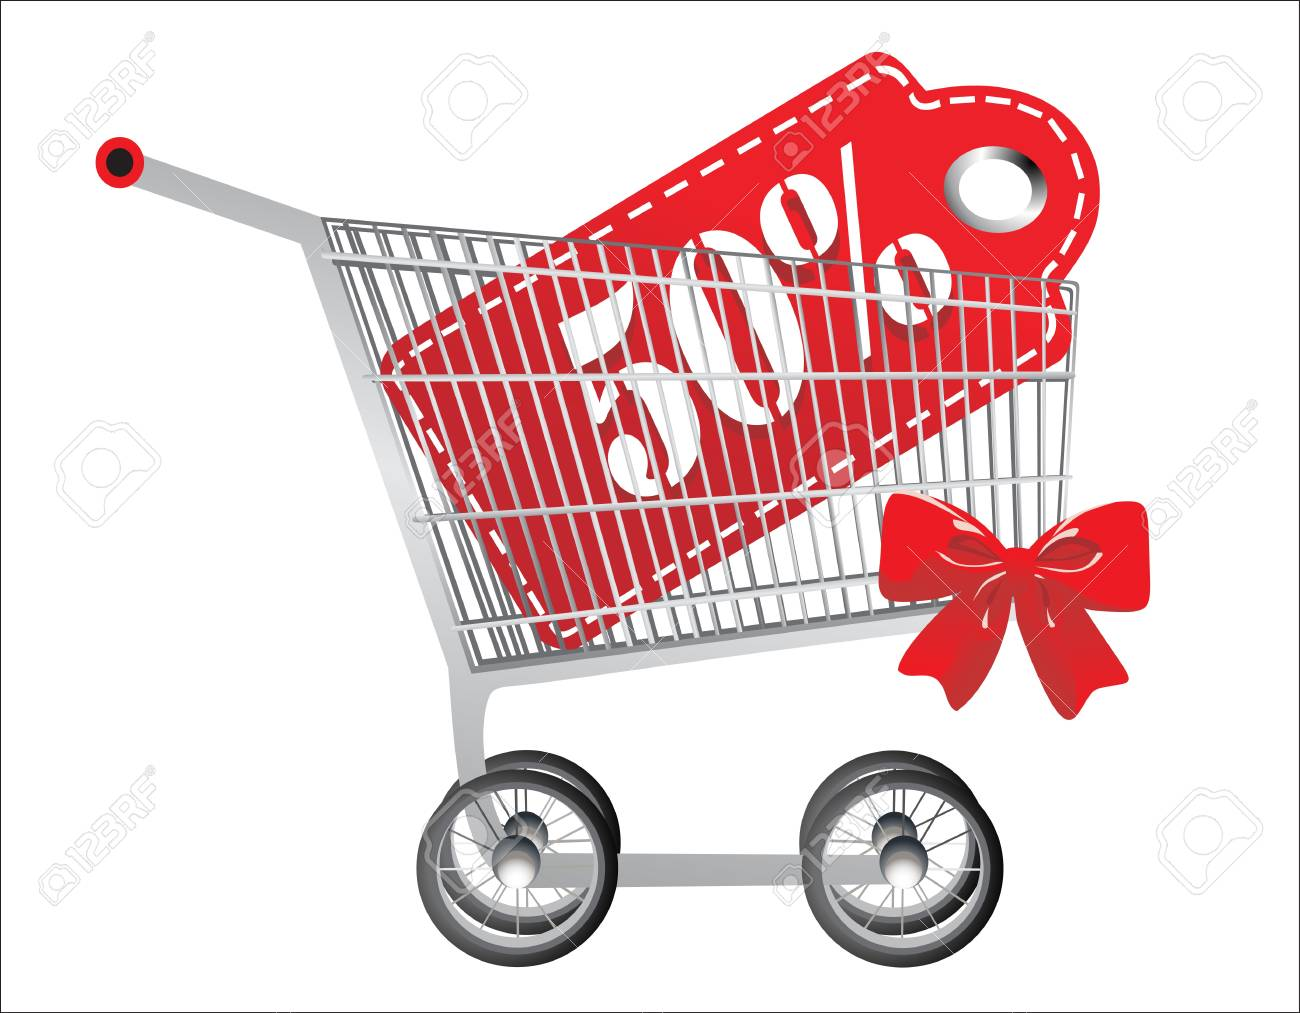 hopping cart and red fifty percentage discount, isolated on white background. Stock Vector - 18440465